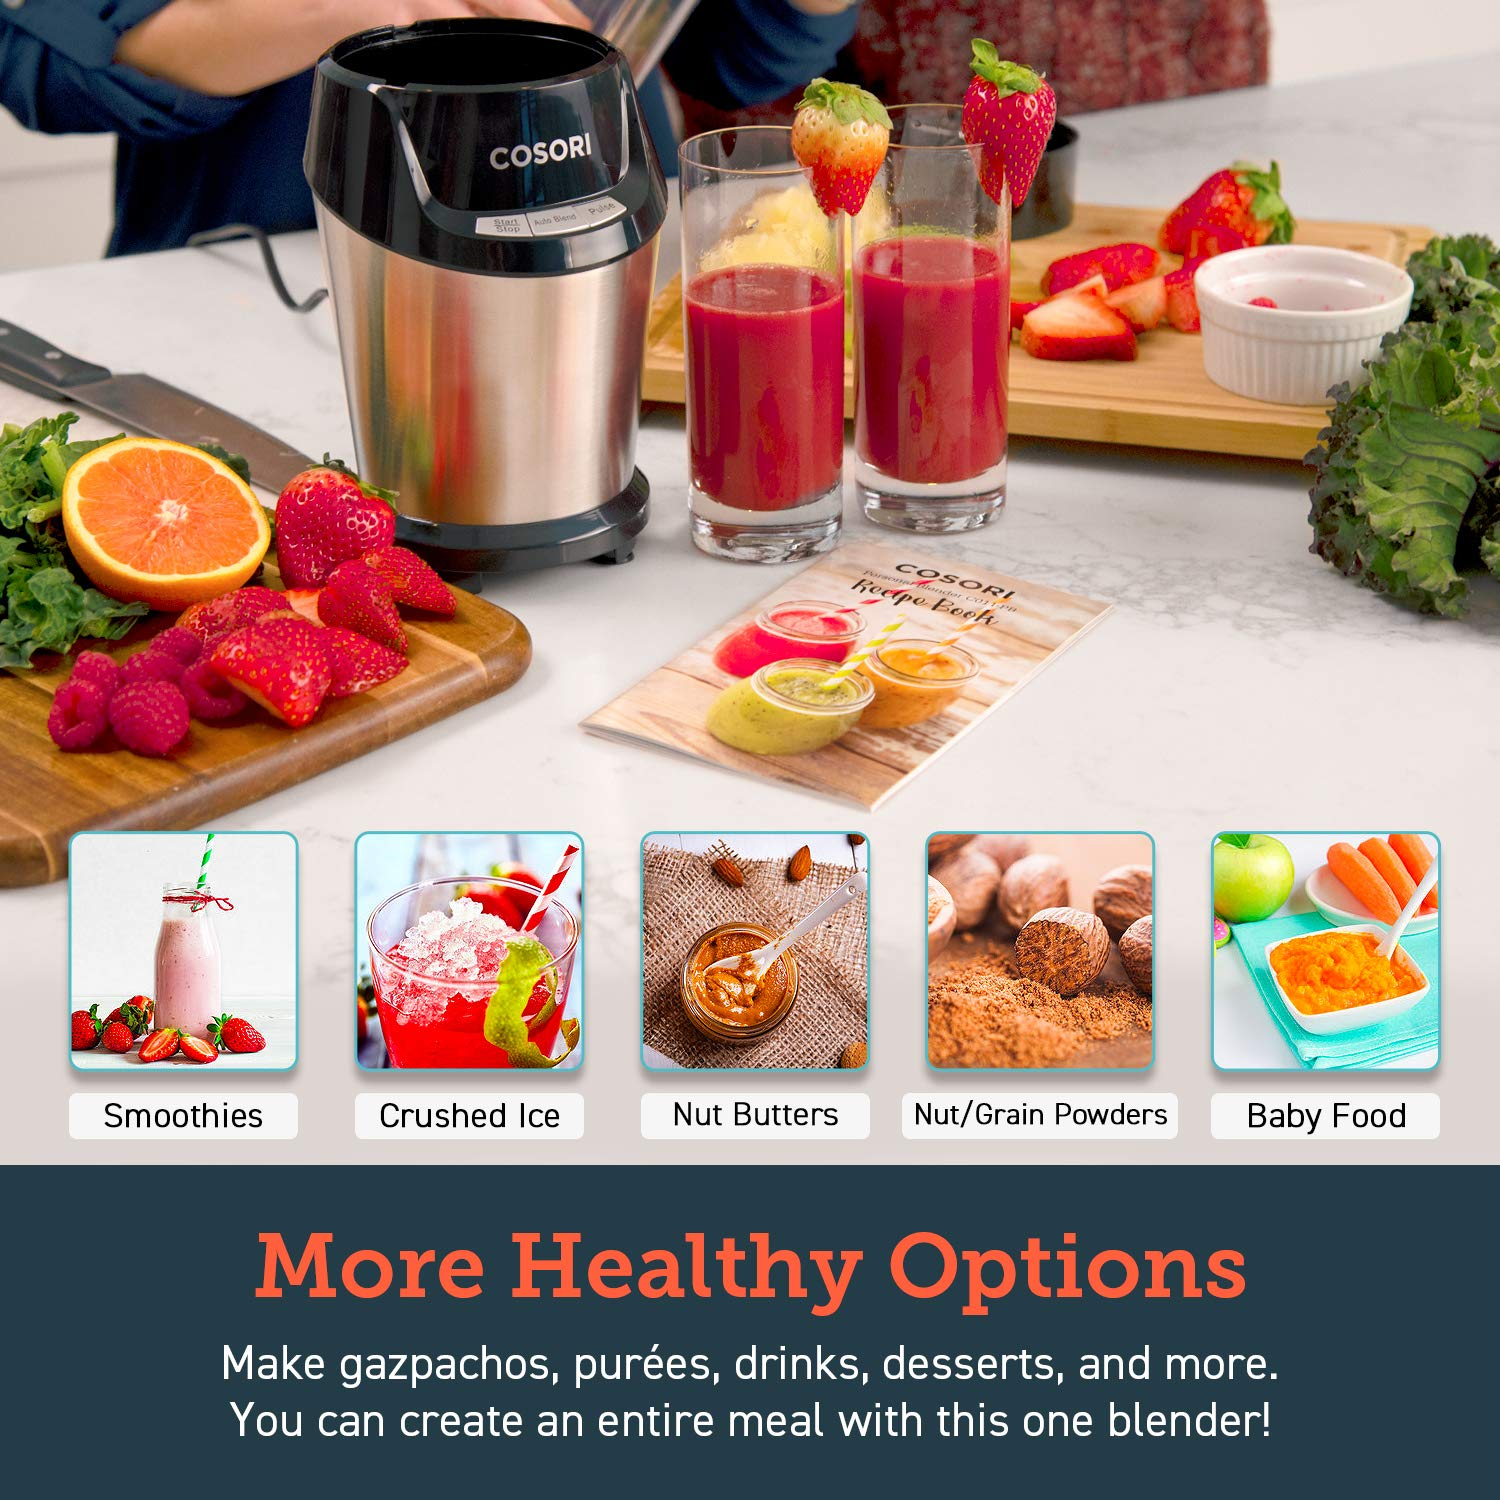 one 12oz Cup Smoothie Blender Recipe Book Included Auto /& Pulse Function to Extract Nutrients for Juices /& Shakes 800-Watt Base 2 X 24oz Personal Blender for Shakes and Smoothies 2-Year Warranty COSORI Blender